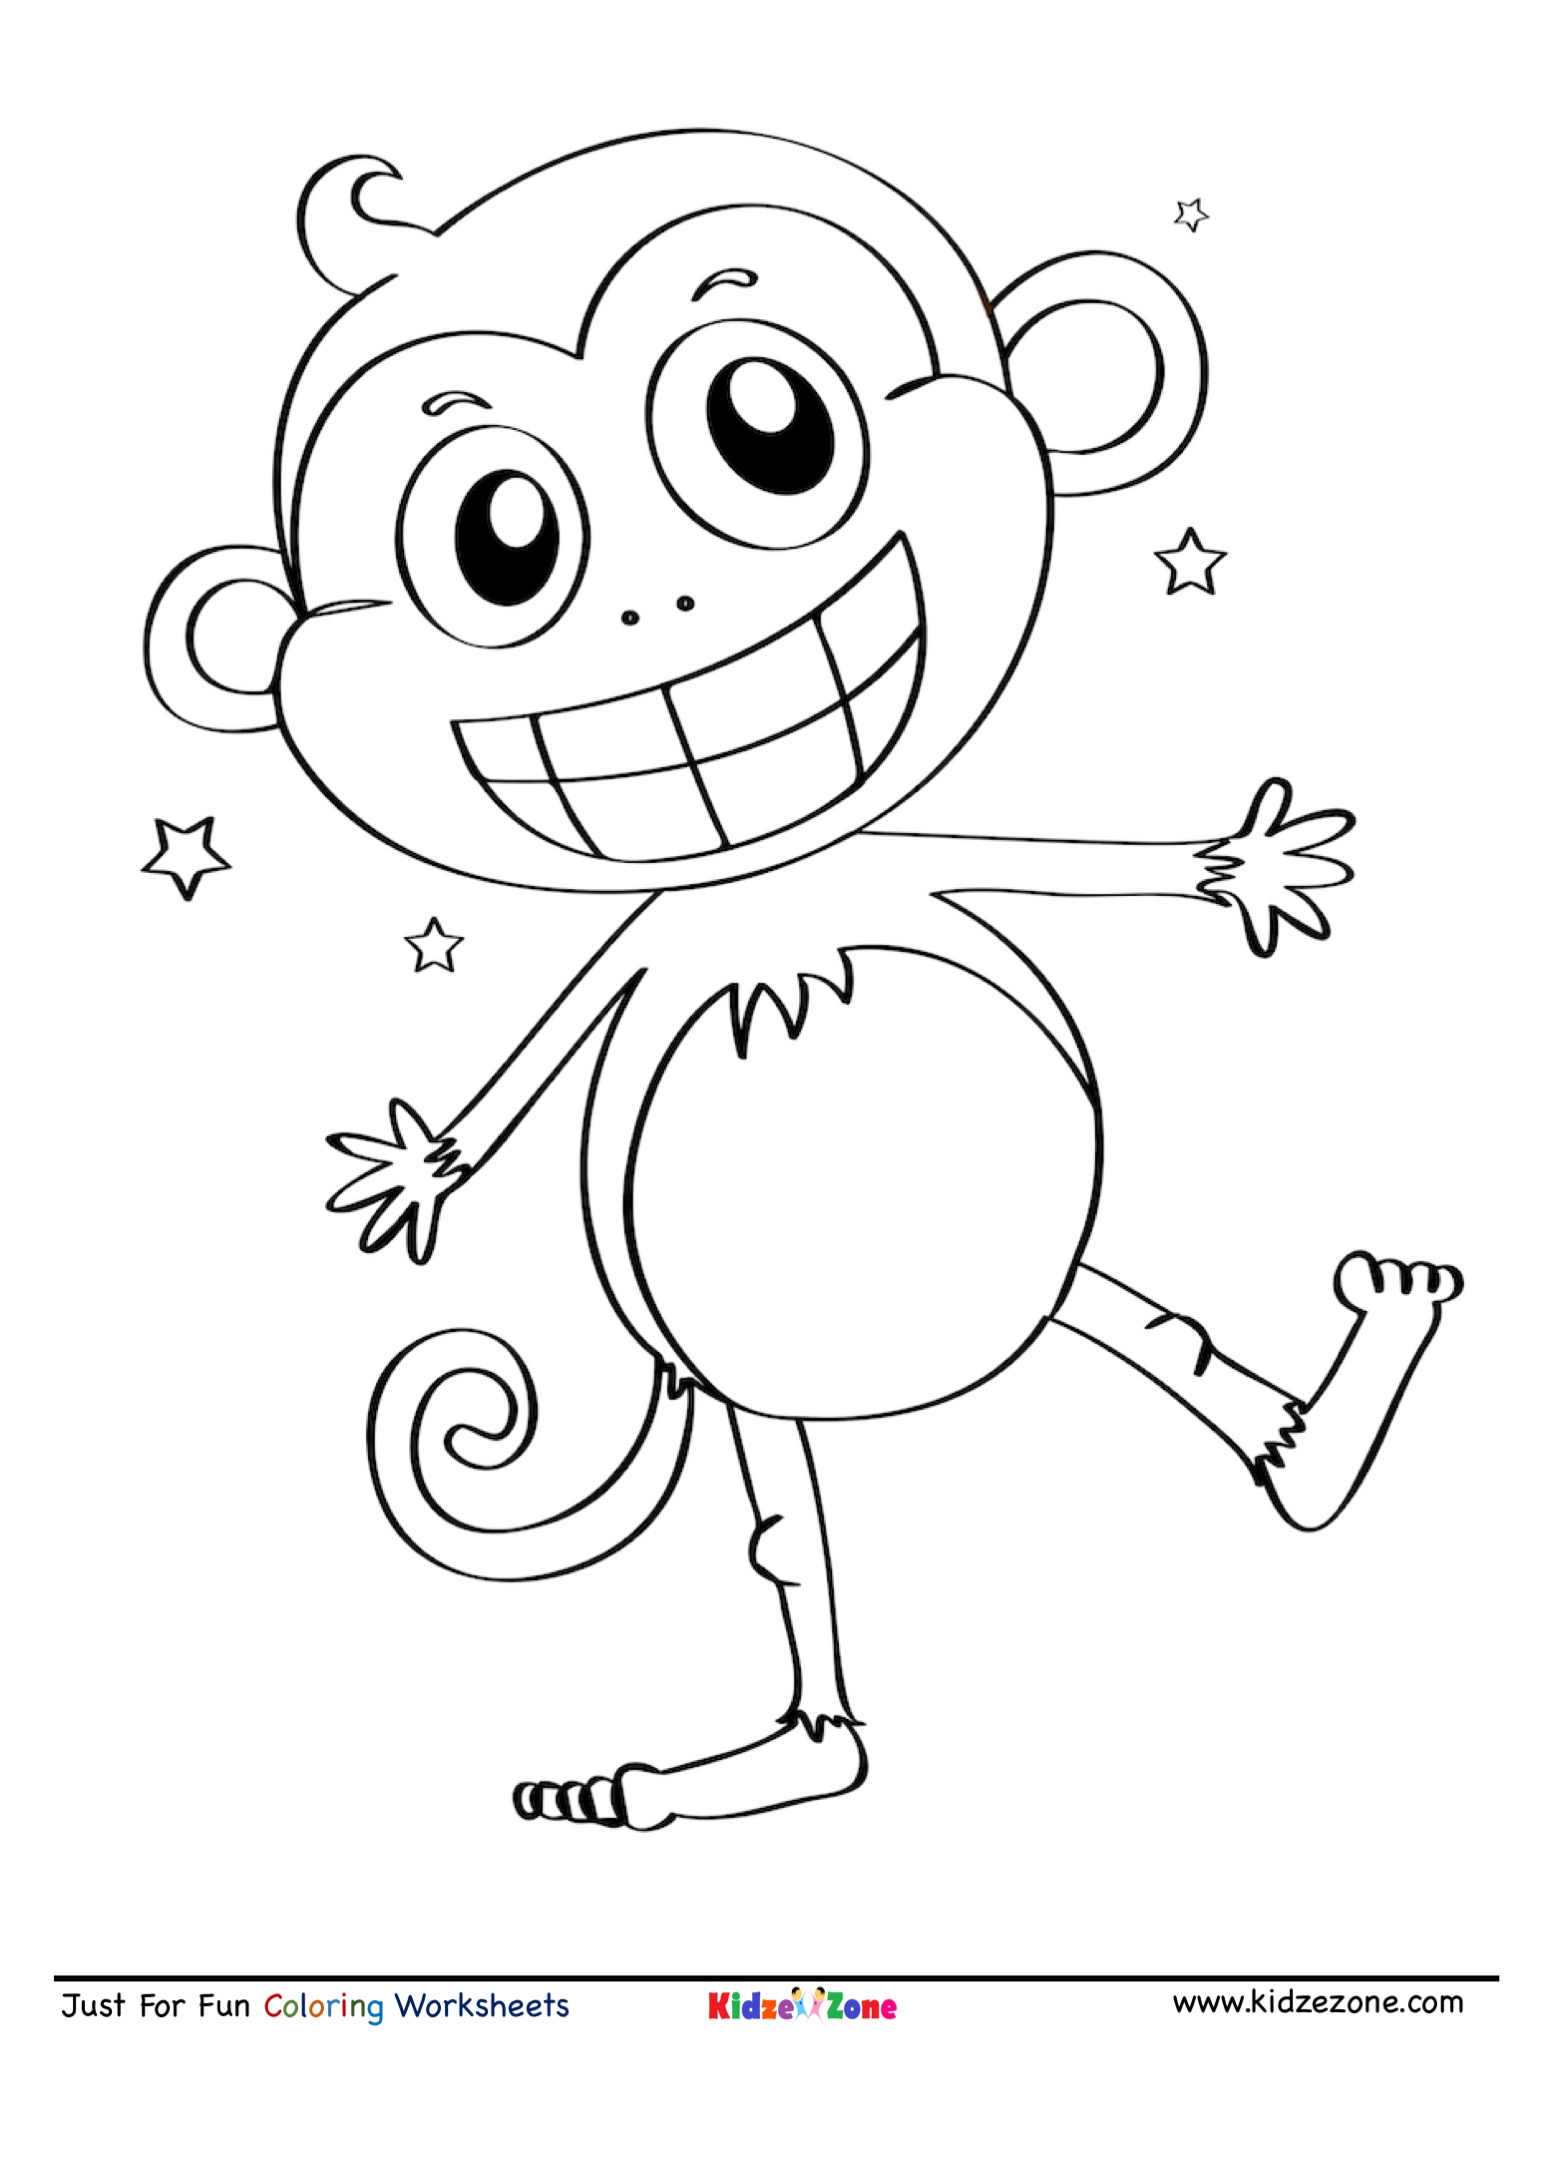 Dancing Monkey Coloring Page